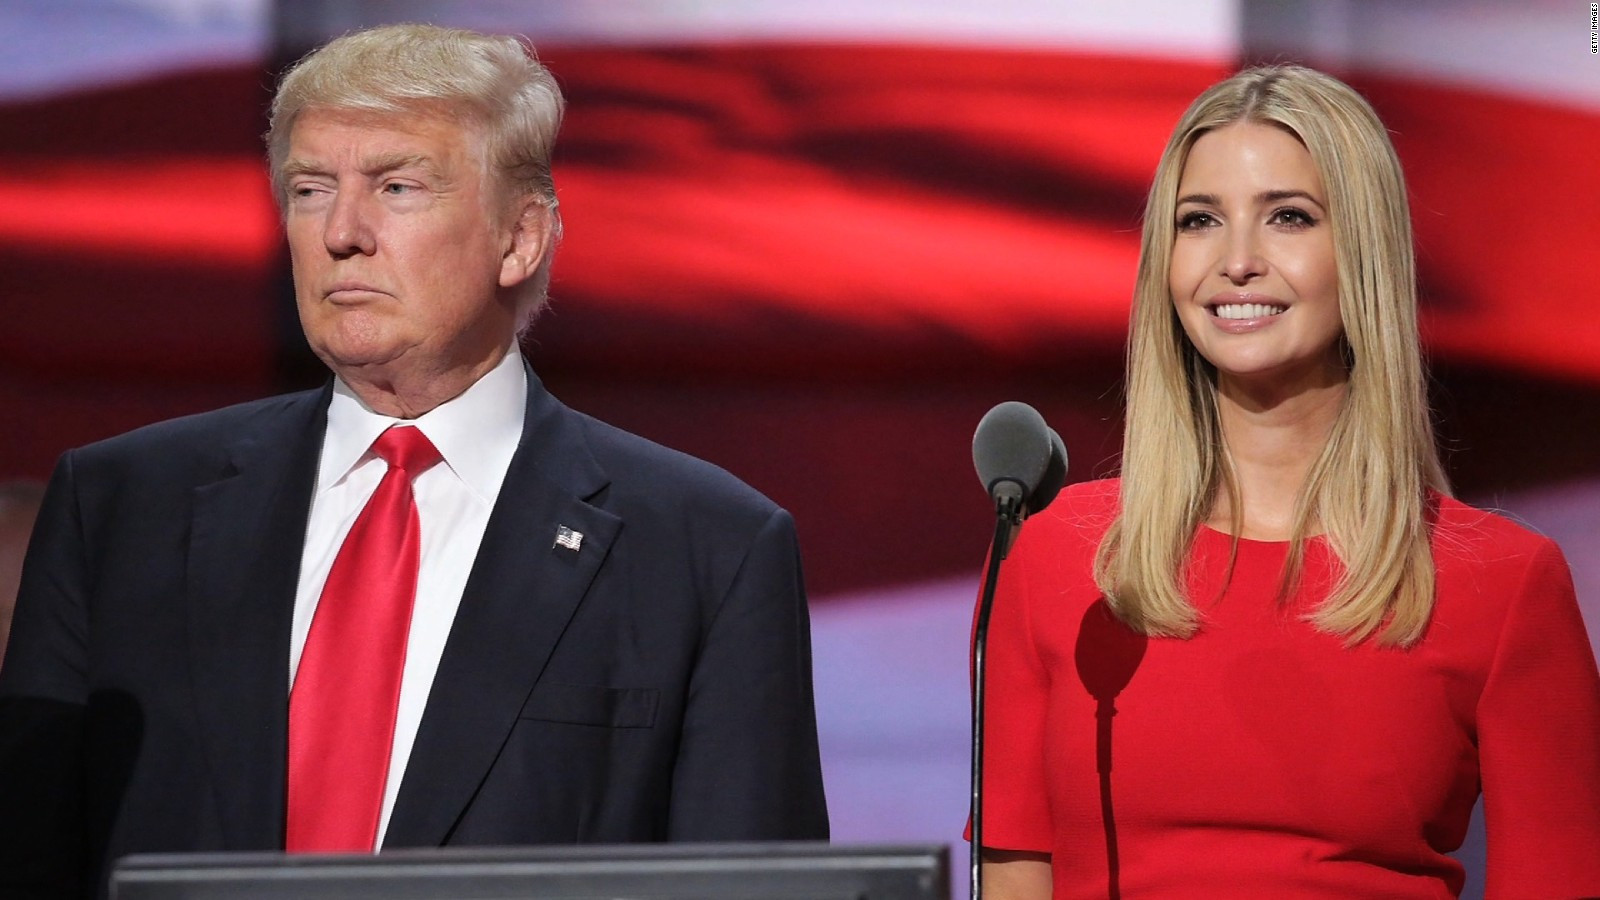 Ivanka Trump deposed by DC attorney general as part of an ongoing investigation into her father